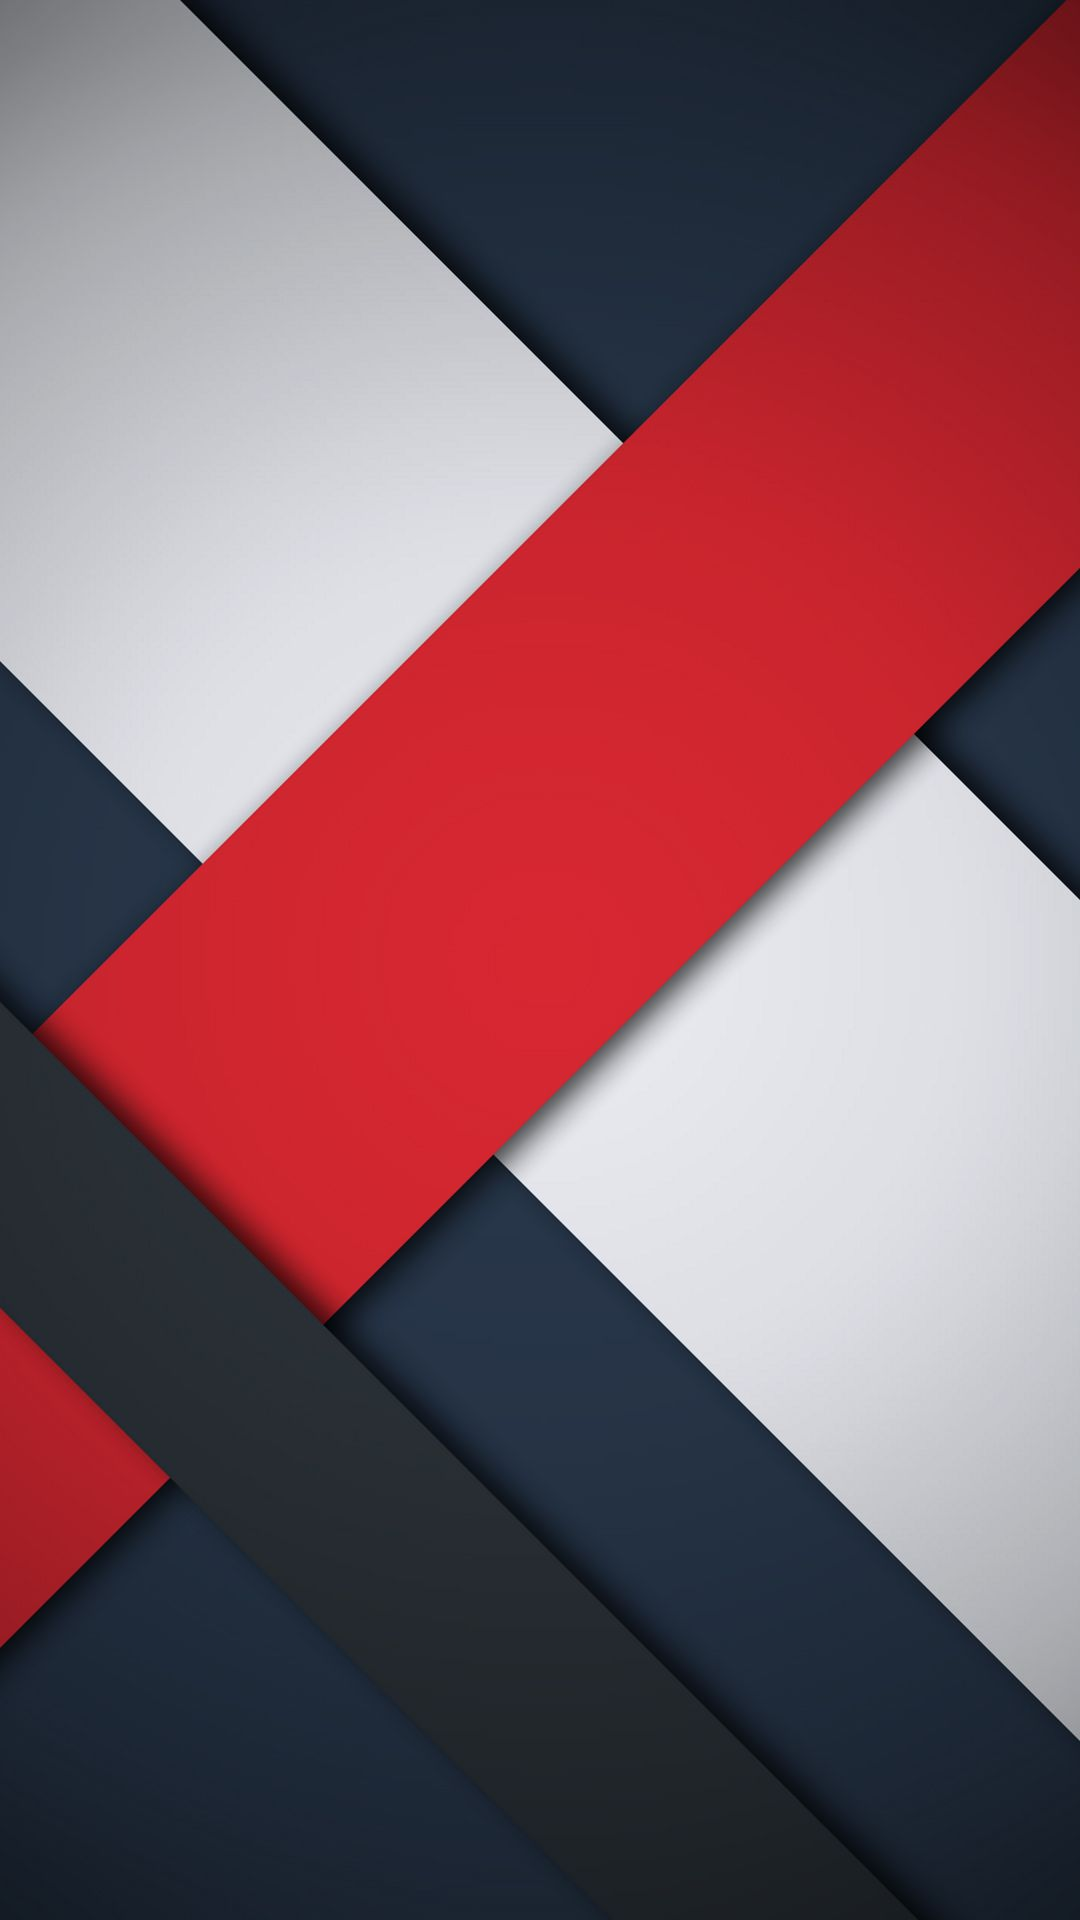 modern material design hd wallpaper ideal for smart phones original resolution of